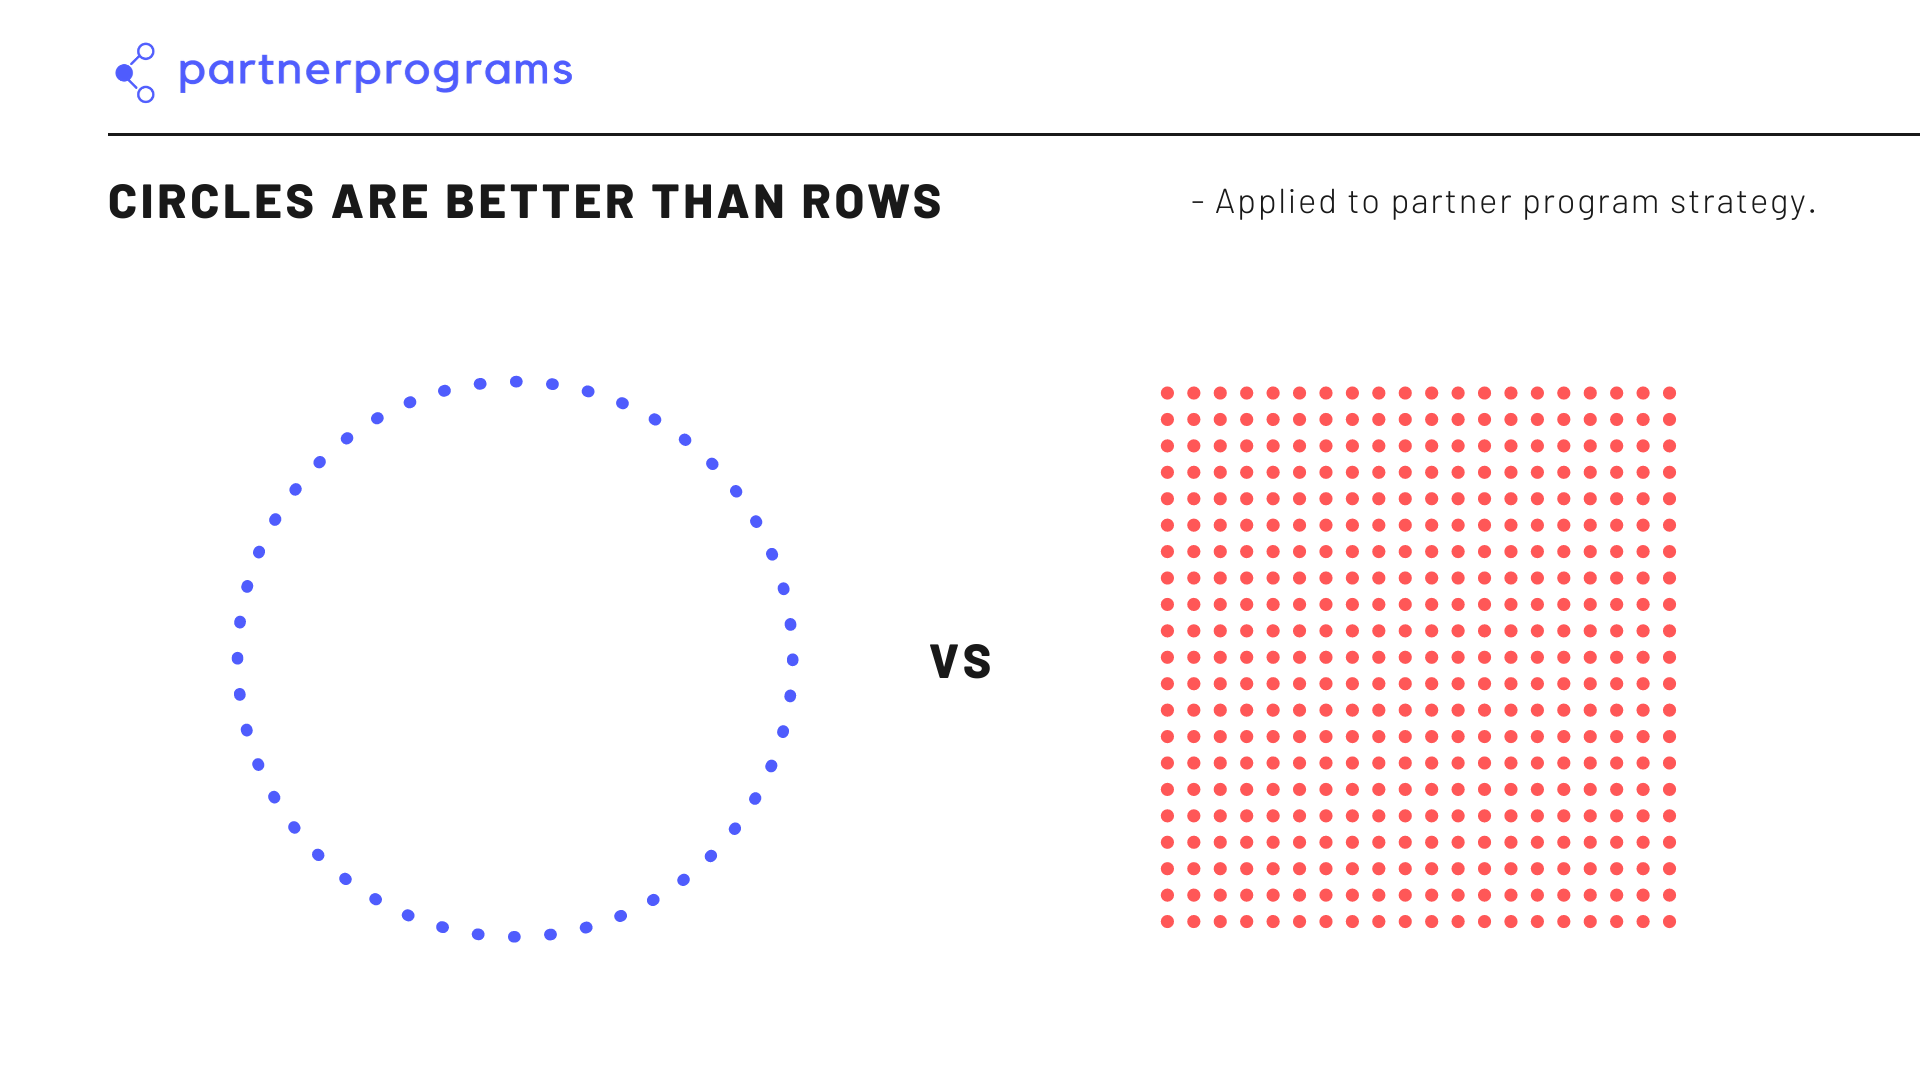 Circles vs Rows: Taking this approach in your partner program strategy.